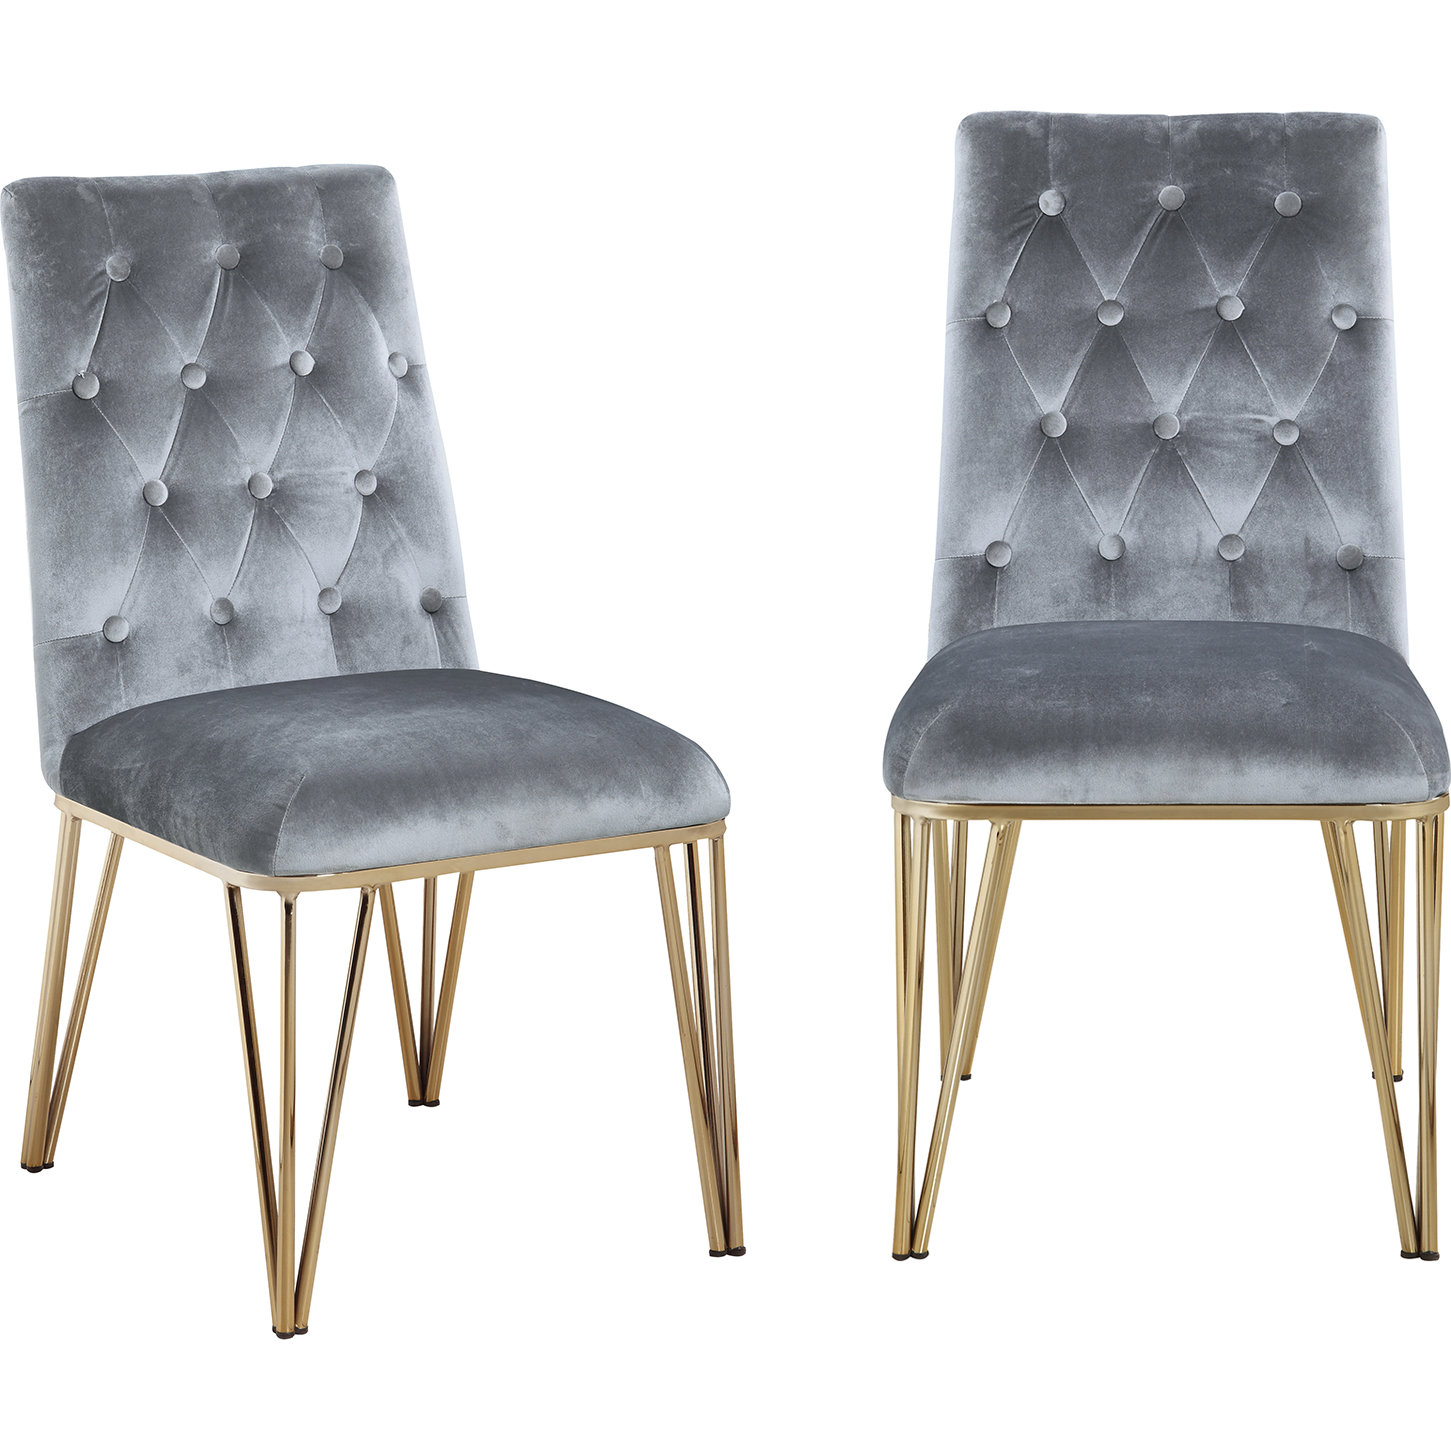 Callahan Dining Chair In Tufted Grey Velvet On Gold Metal Set Of 2 By Chic Home